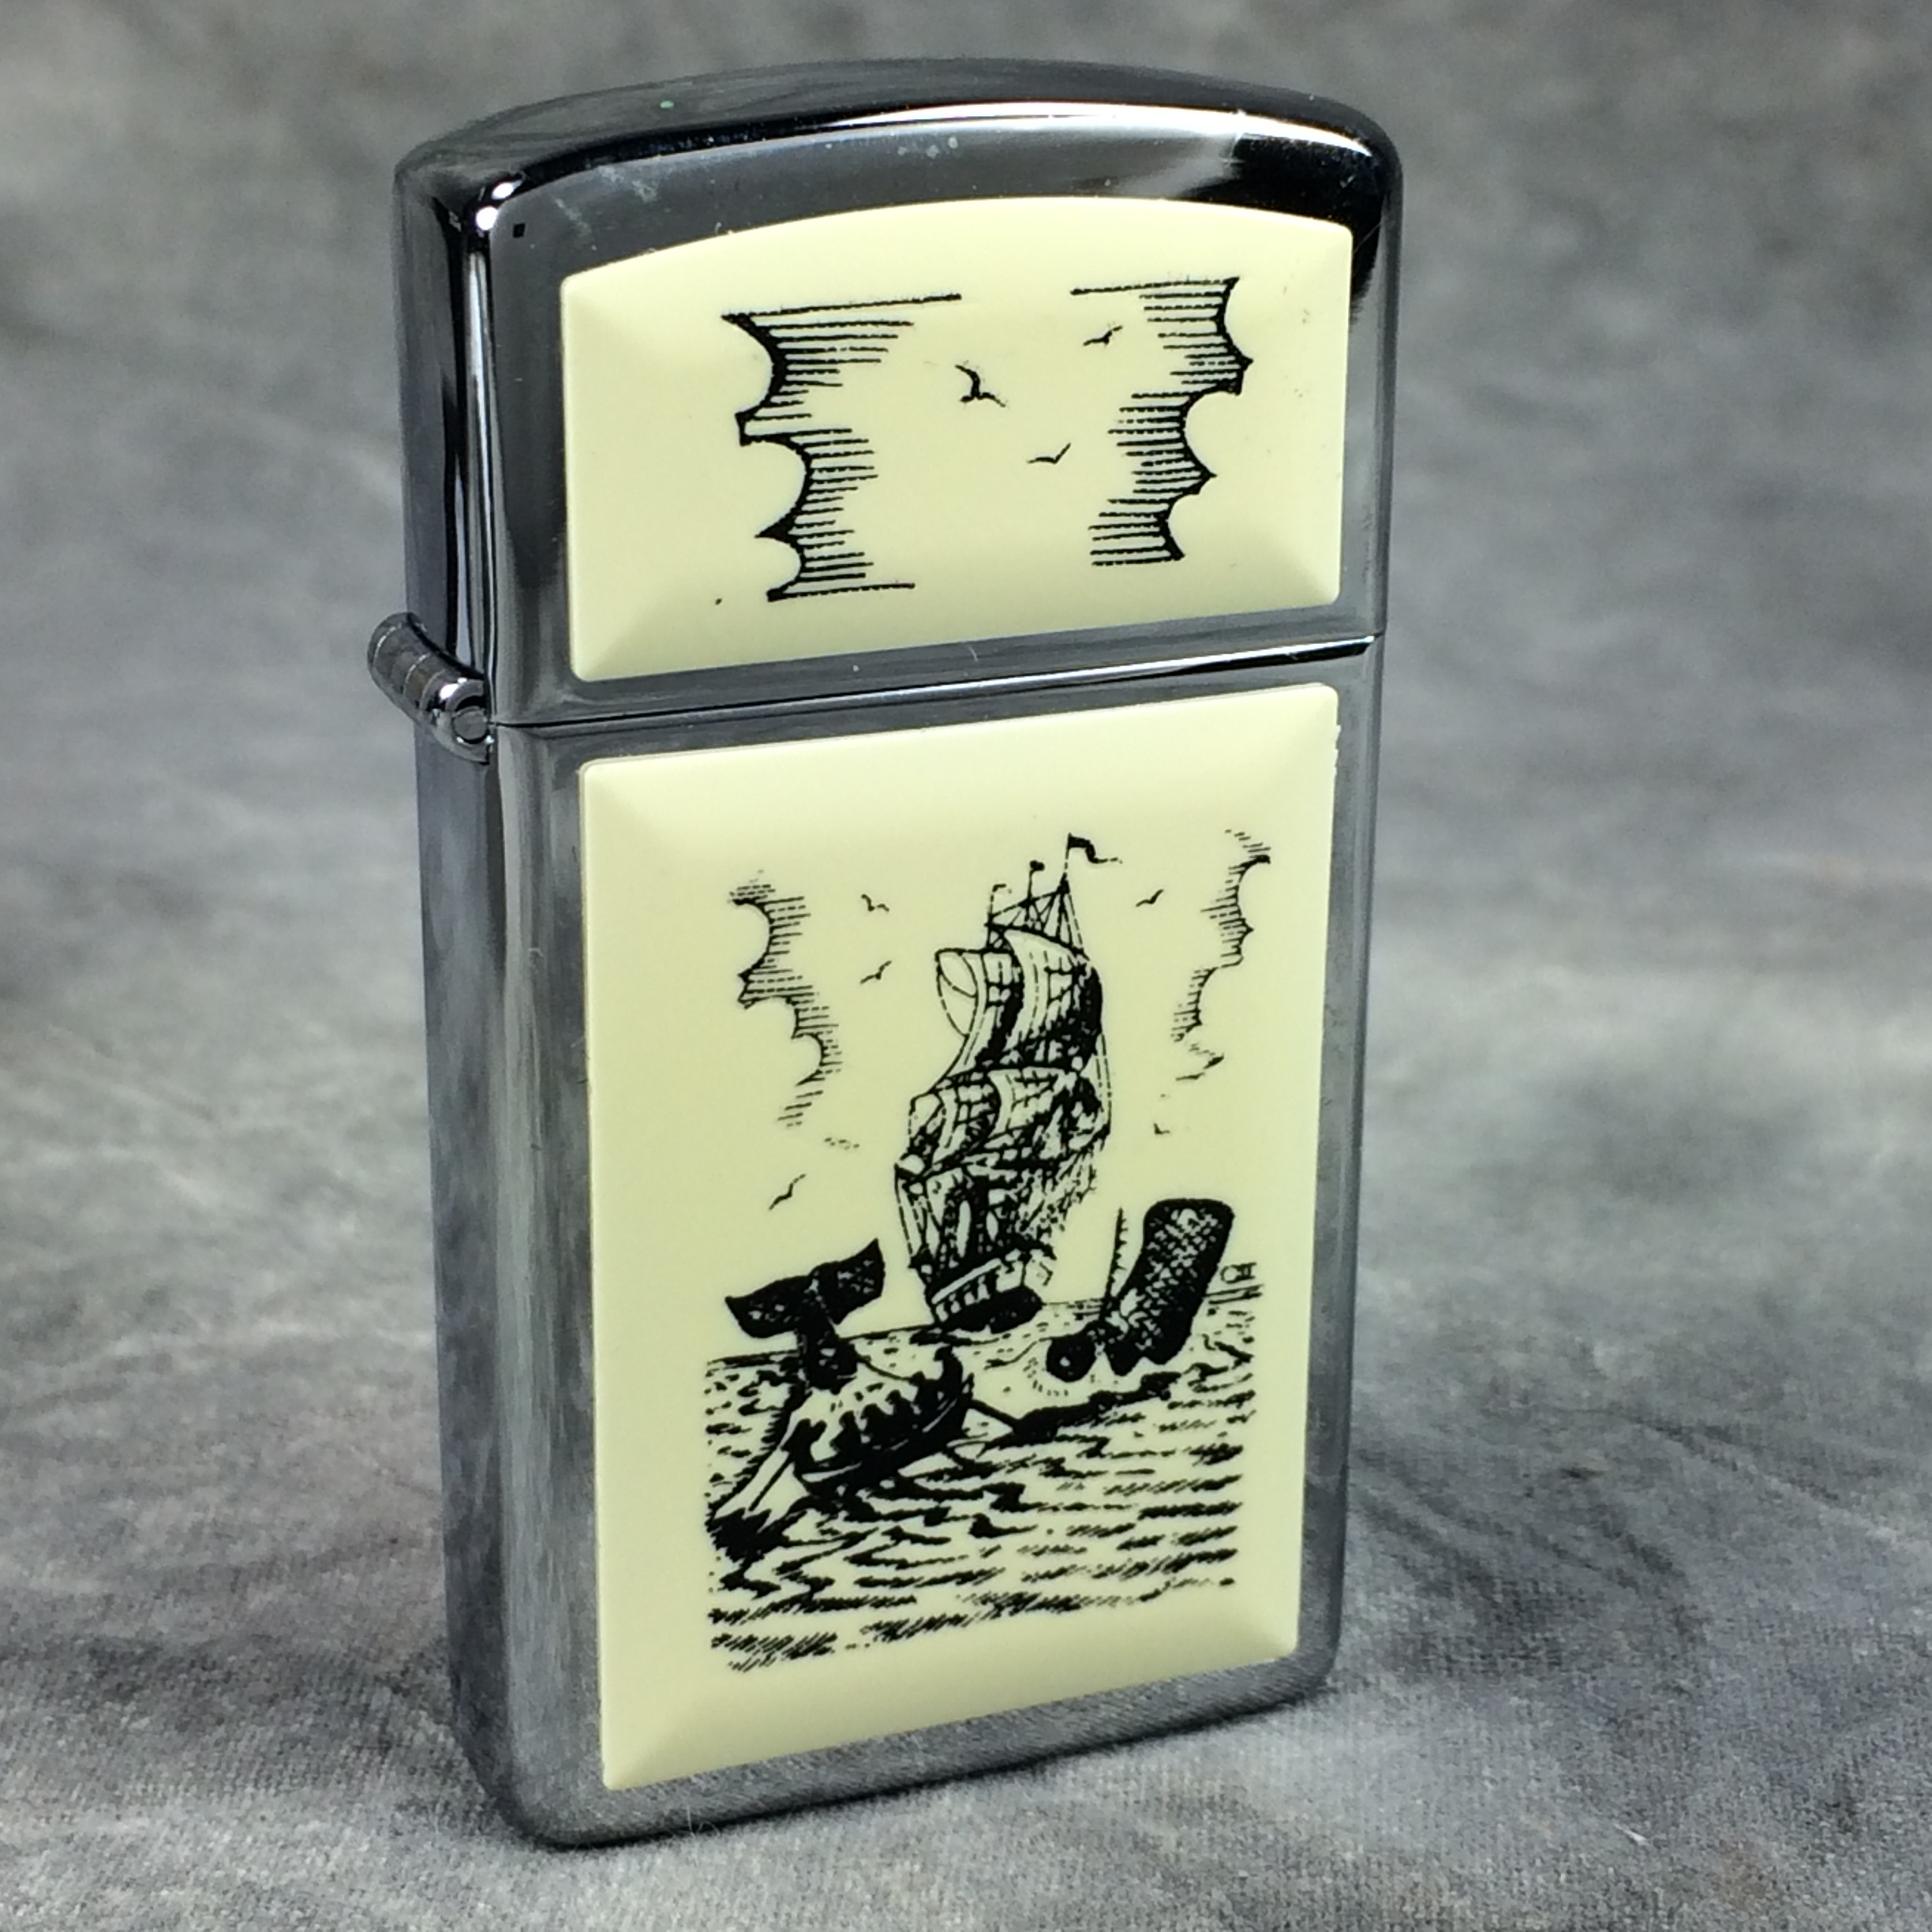 dating zippo slim lighters Page 1 of 2 - usn lighters zippo, penguin, vulcan, prince rocky, ronson, etc - posted in craig pickrall field & personal gear section: aloha everyone, many of us collect naval lighters, not only zippo brand, but also penguin, vulcan, prince rocky, etc theyre great mementos of service aboard ships and stations of the us navy worldwide and.